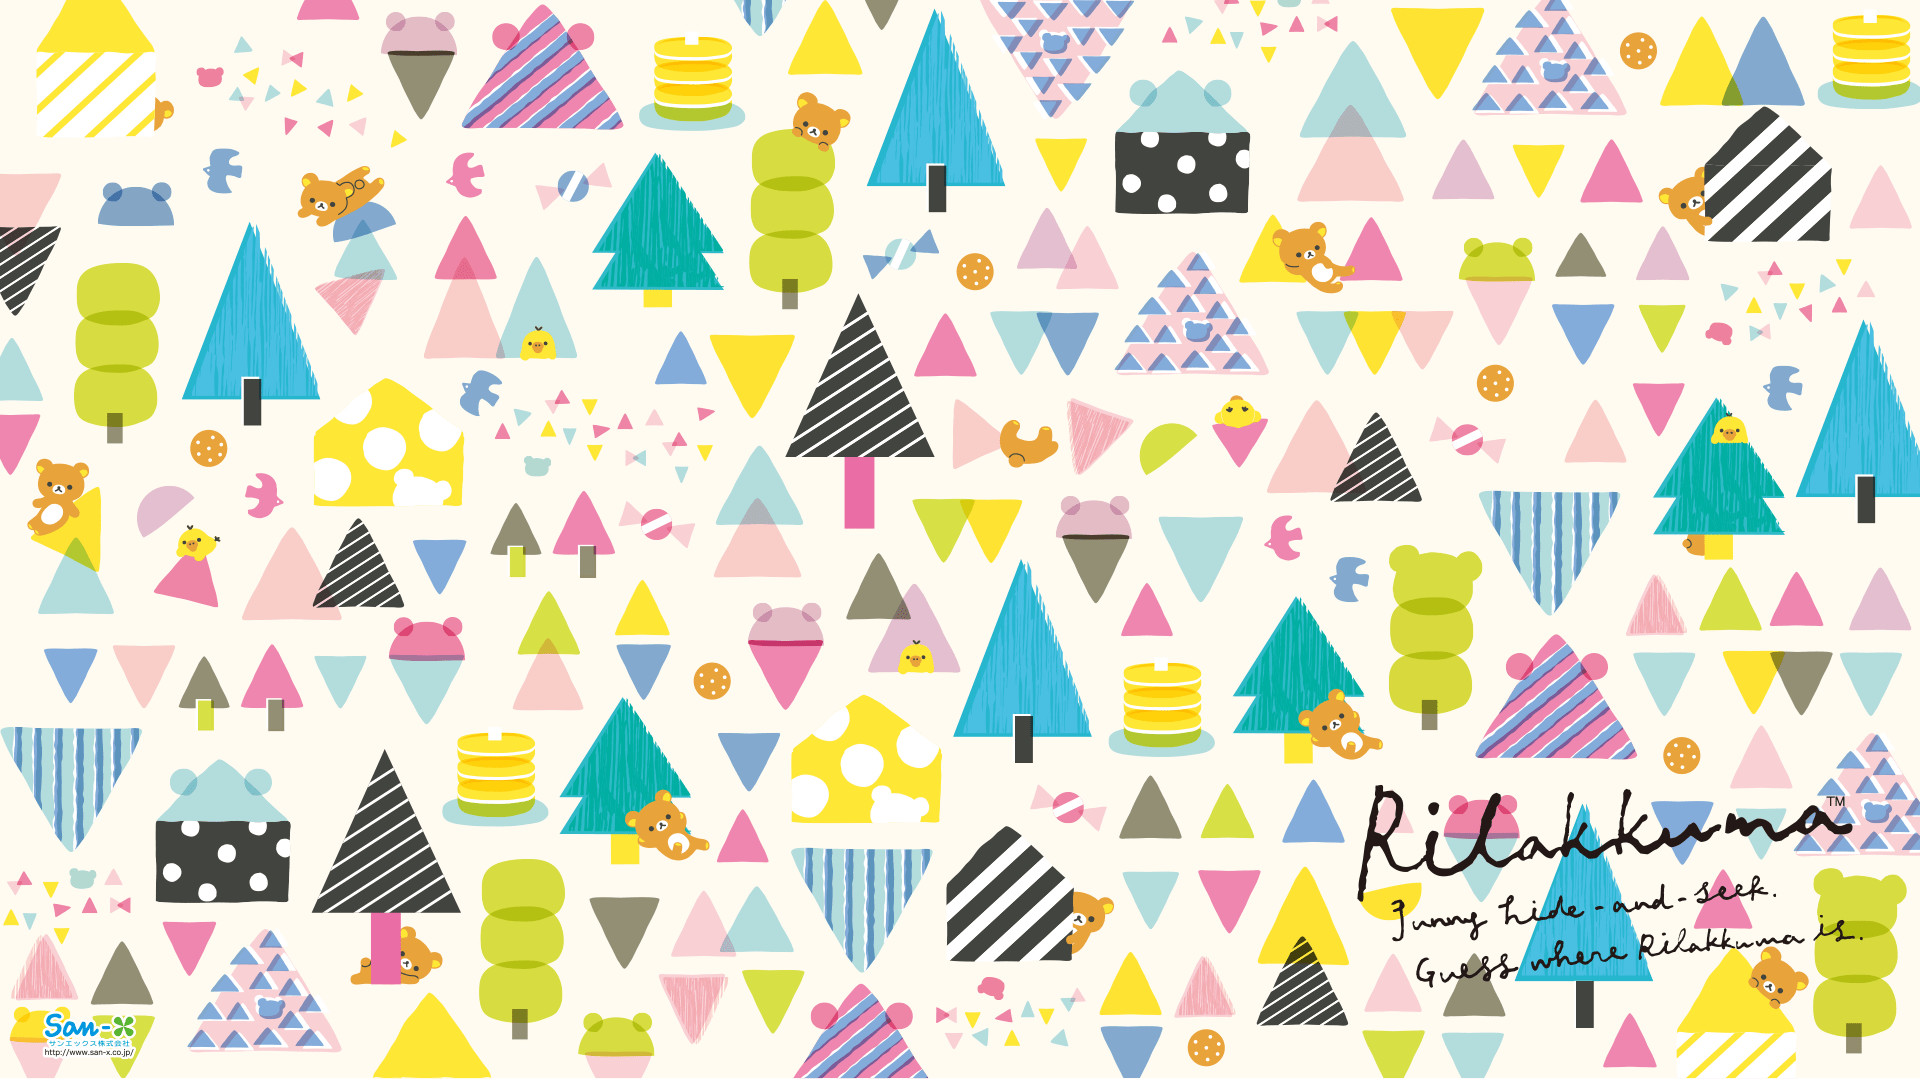 Res: 1920x1080, Rilakkuma Hide & Seek Wallpaper